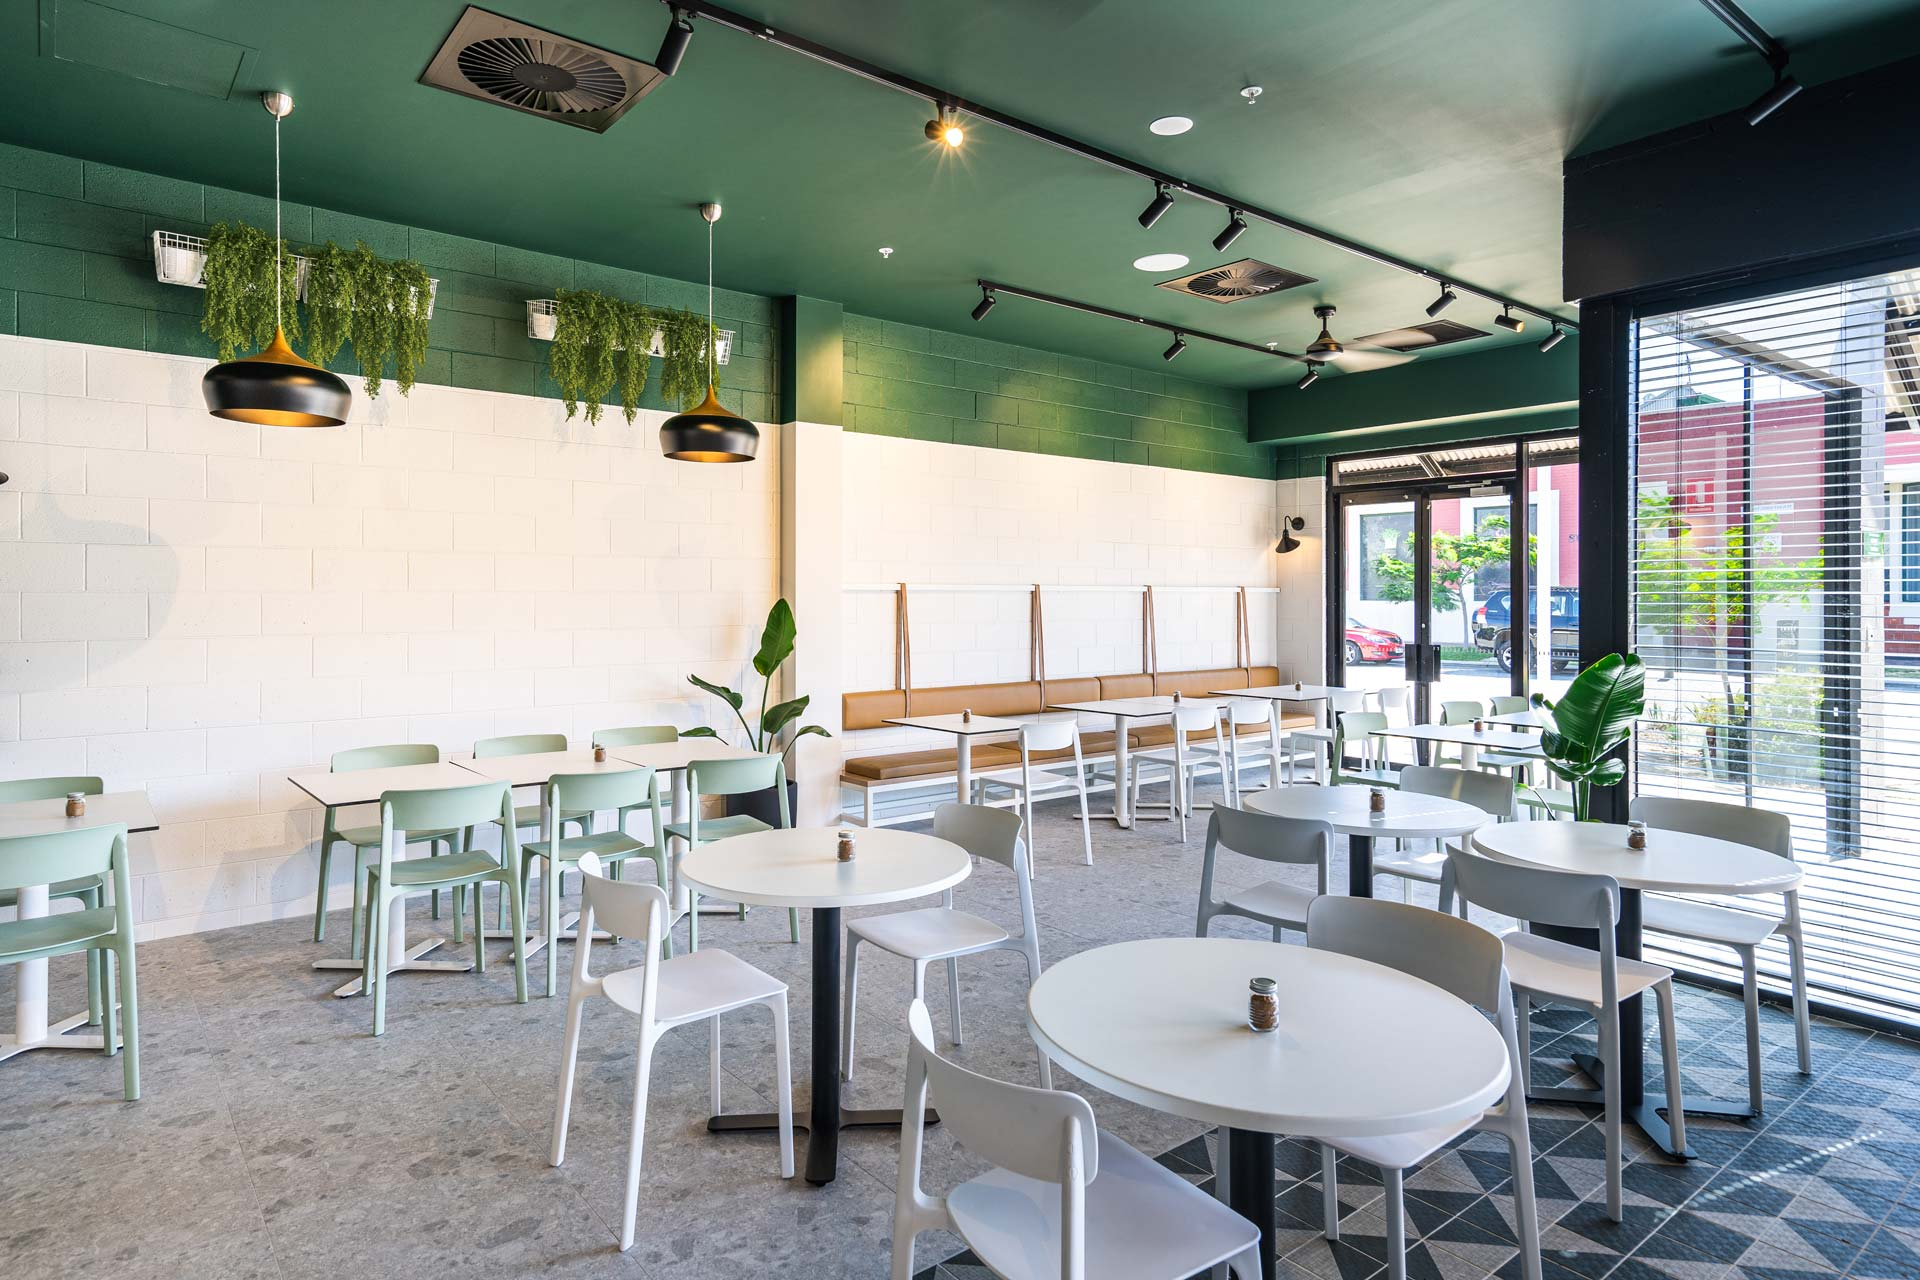 Forklore cafe fitout with white tables and chairs and a green ceiling